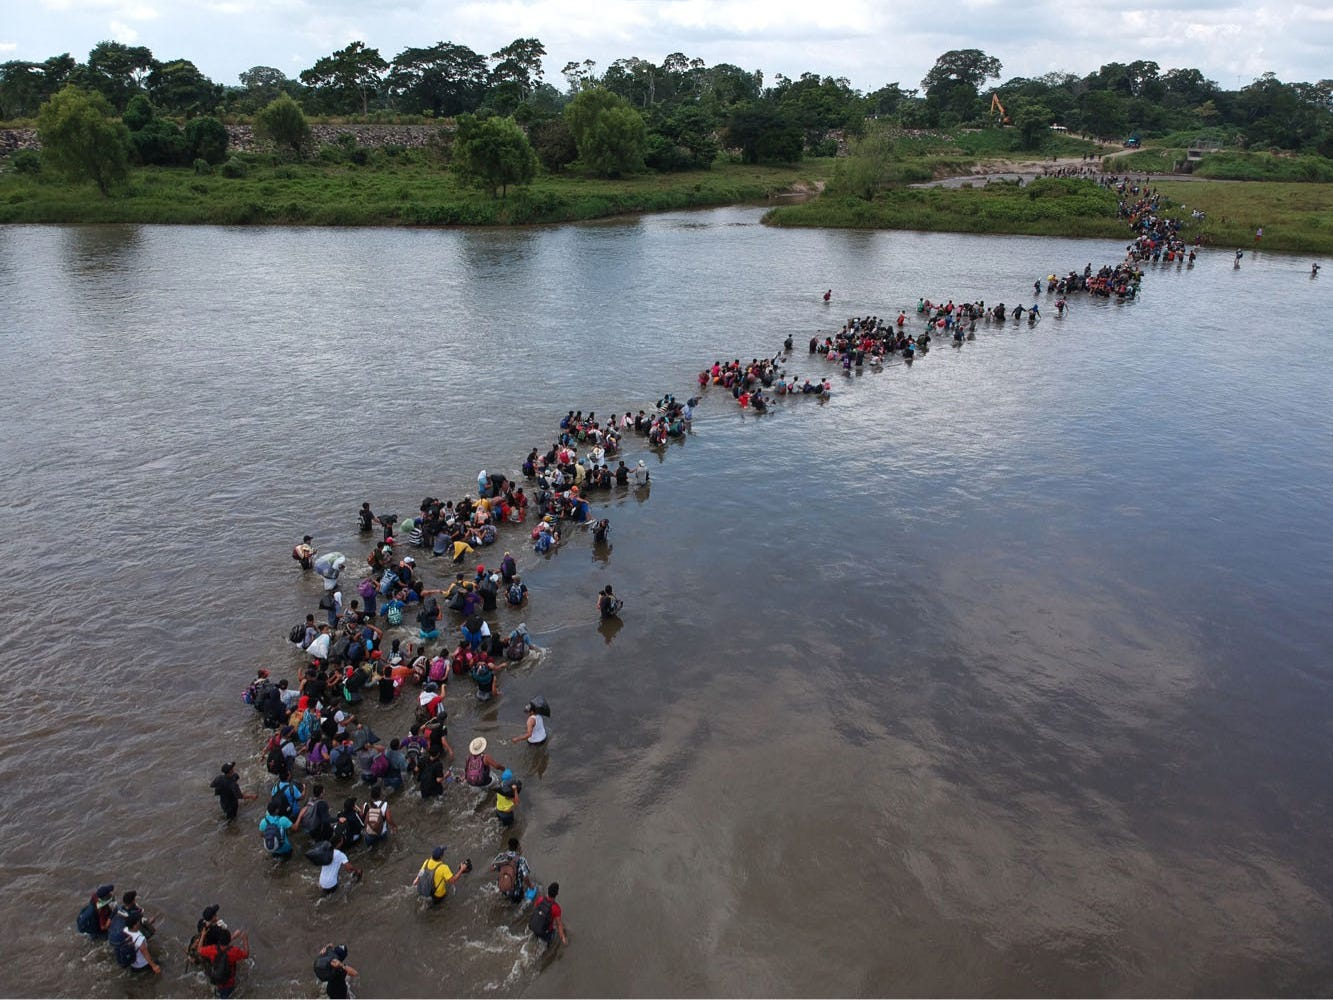 Salvadorian migrants heading in a caravan to the US, cross the Suchiate River to Mexico, from Ciudad Tecun Uman, Guatemala, on Nov. 02, 2018. According to the Salvadorian General Migration Directorate, over 1,700 Salvadorians left the country in two caravans and entered Guatemala Wednesday, in an attempt to reach the US.